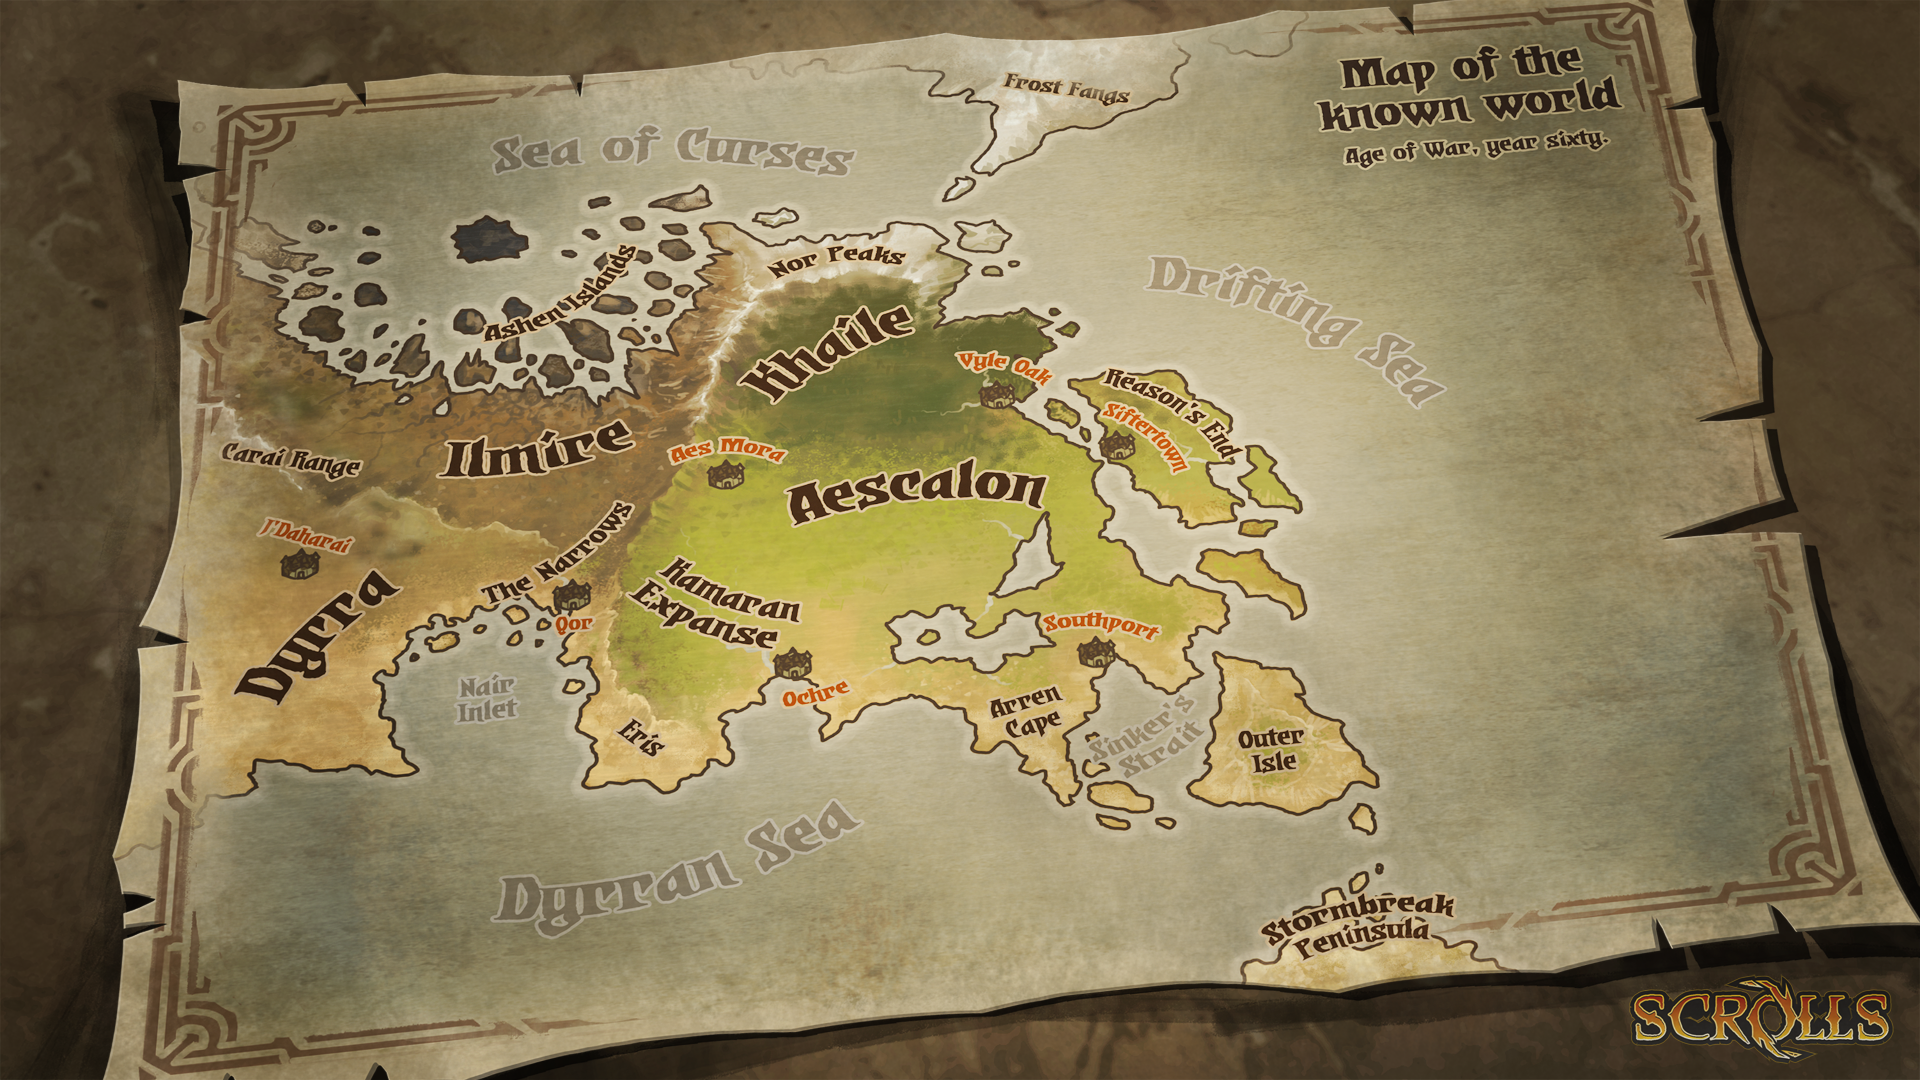 Scrolls World Map